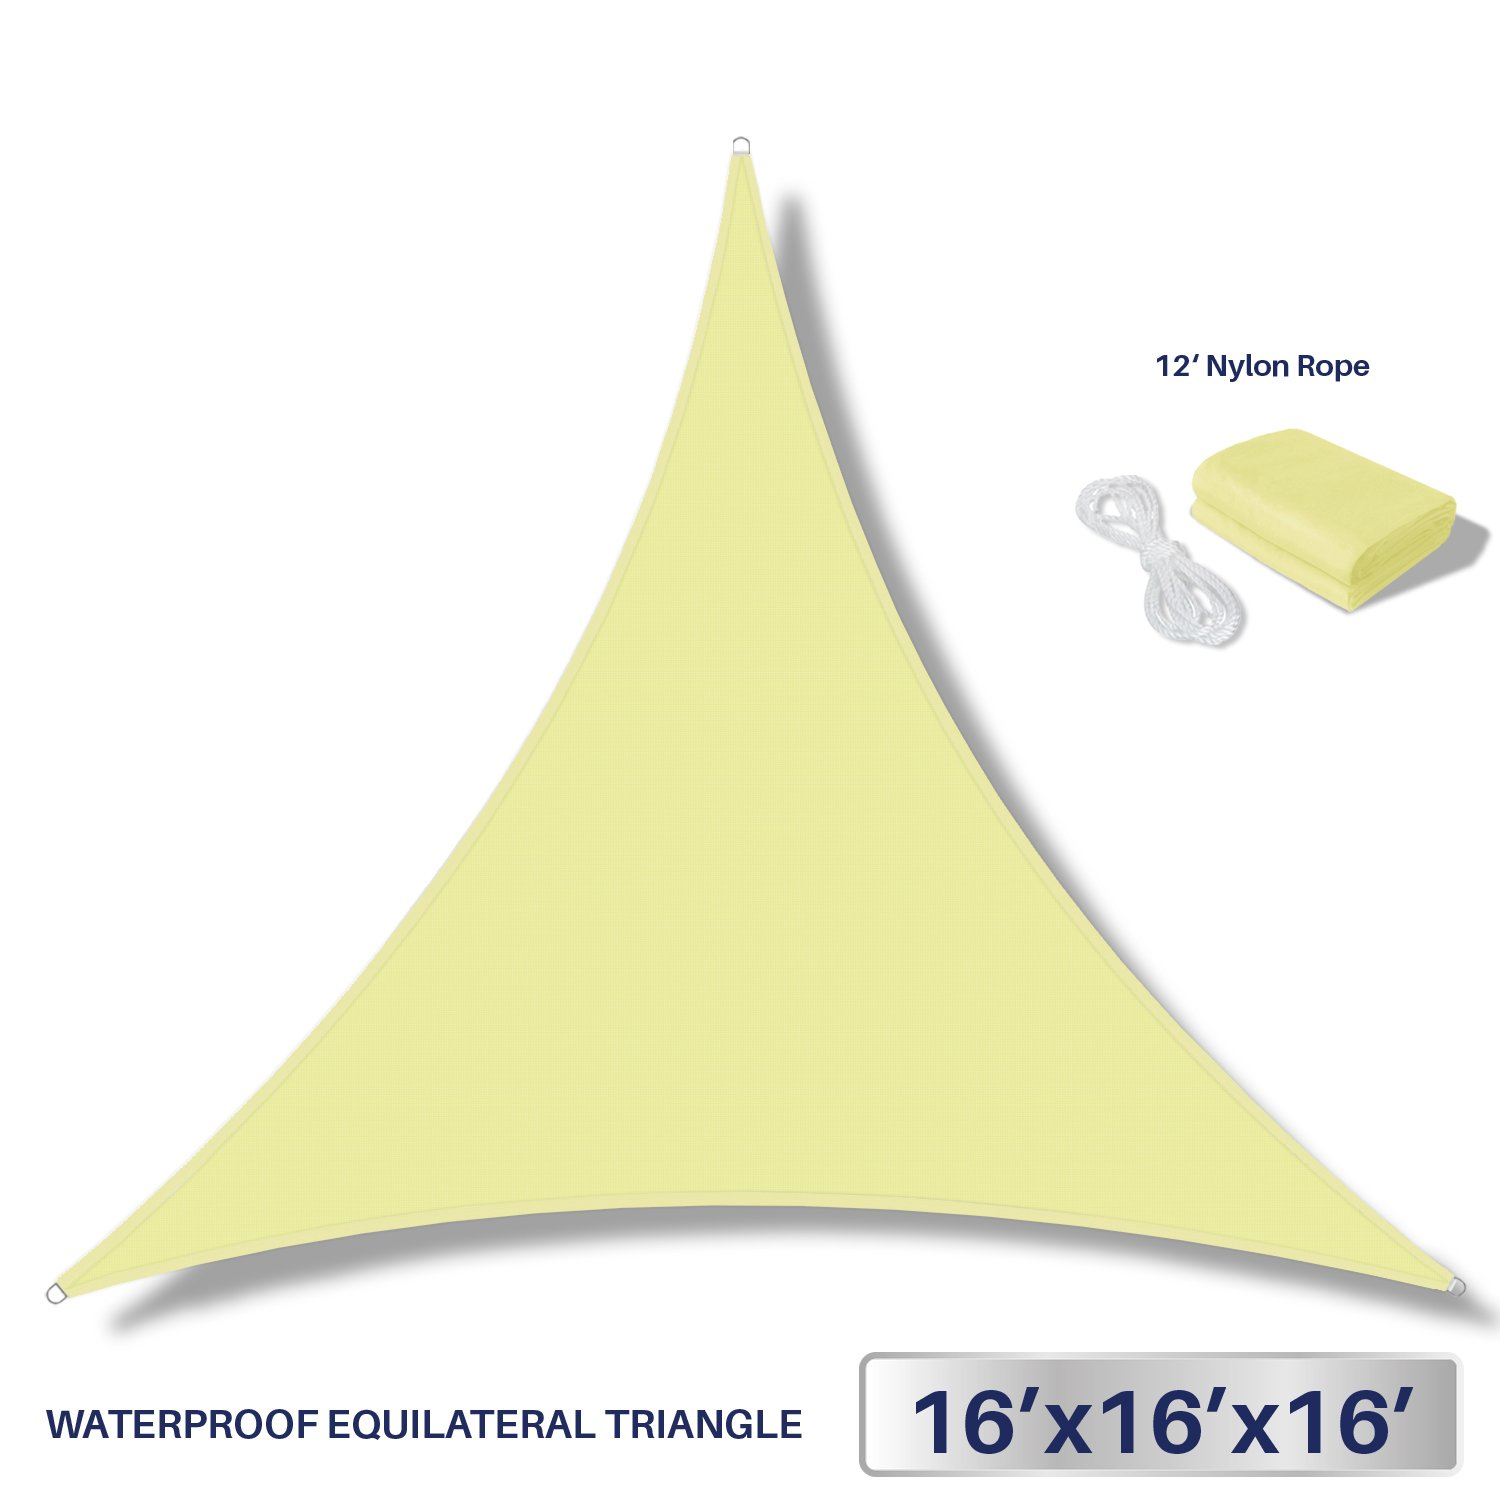 Windscreen4less Terylene Waterproof Sun Shade Sail UV Blocker Triangle Sunshade Patio Canopy Sail 16' x 16' x 16' in Color Canary Yellow